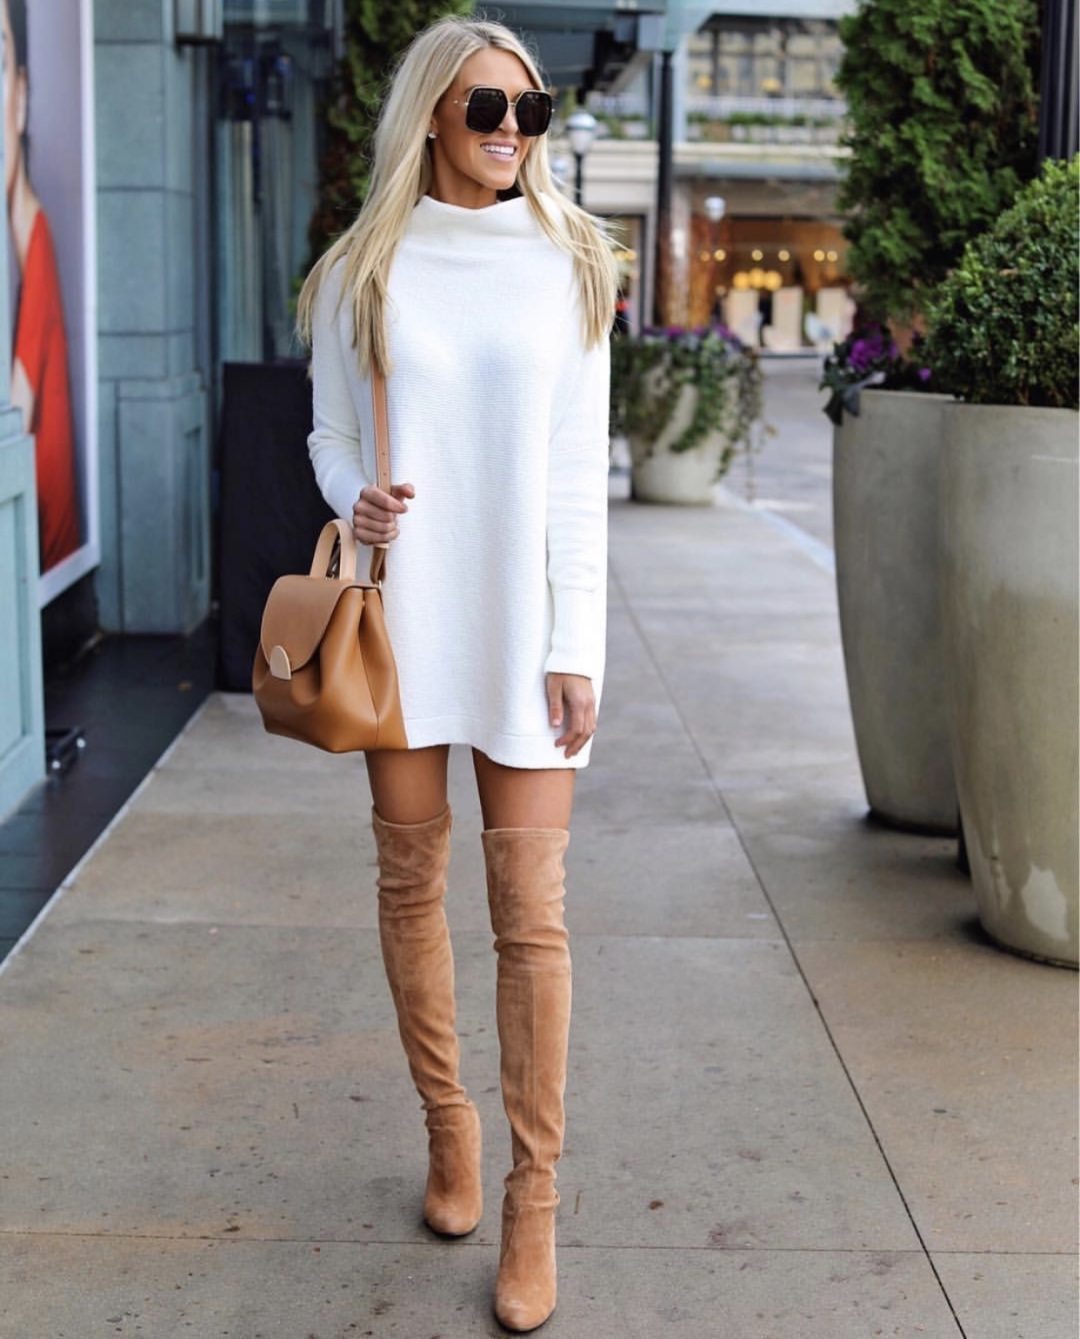 Taupe over the knee boots outfits and tan over the knee boots outfits with white sweater dress